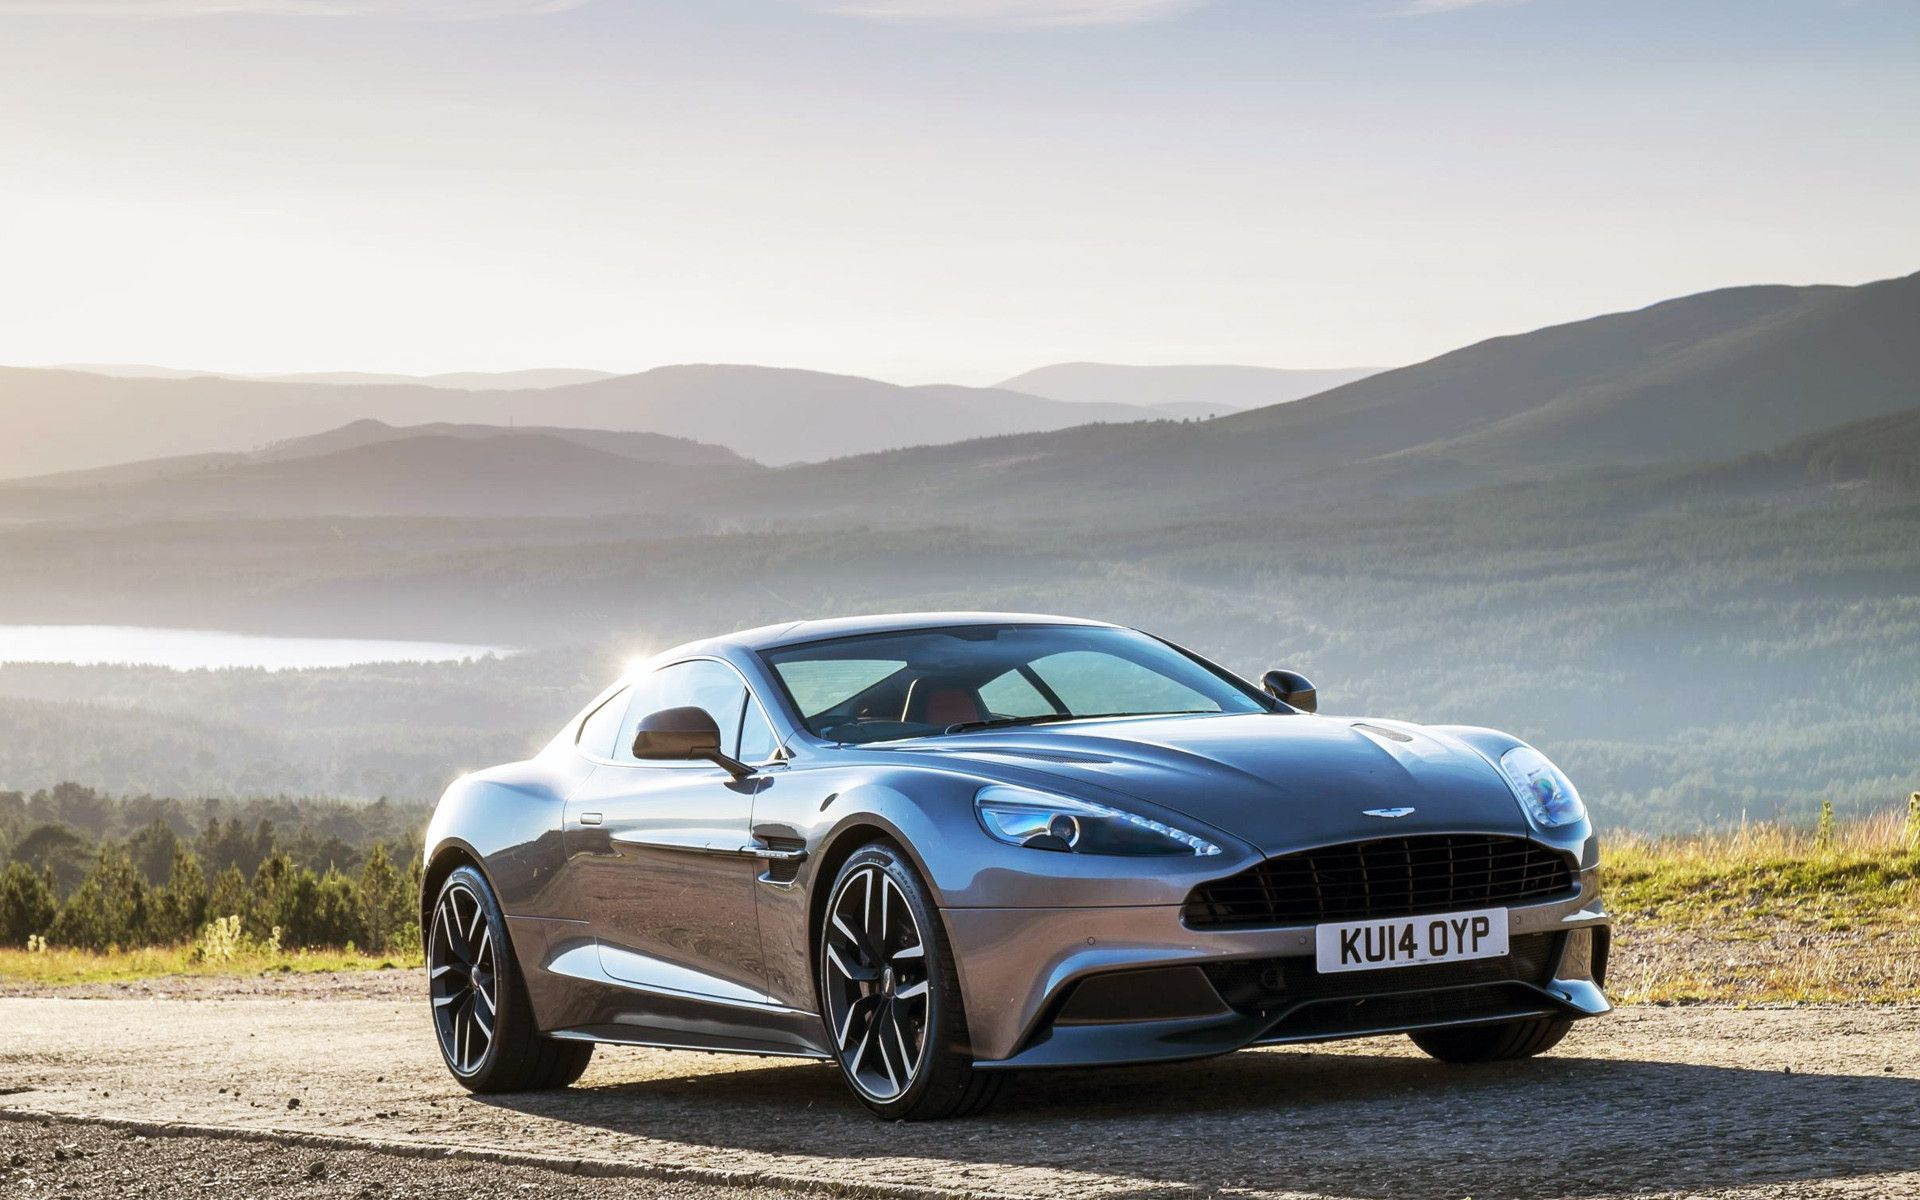 Aston Martin Vanquish Wallpapers For Iphone at Cars Monodomo 1920x1200